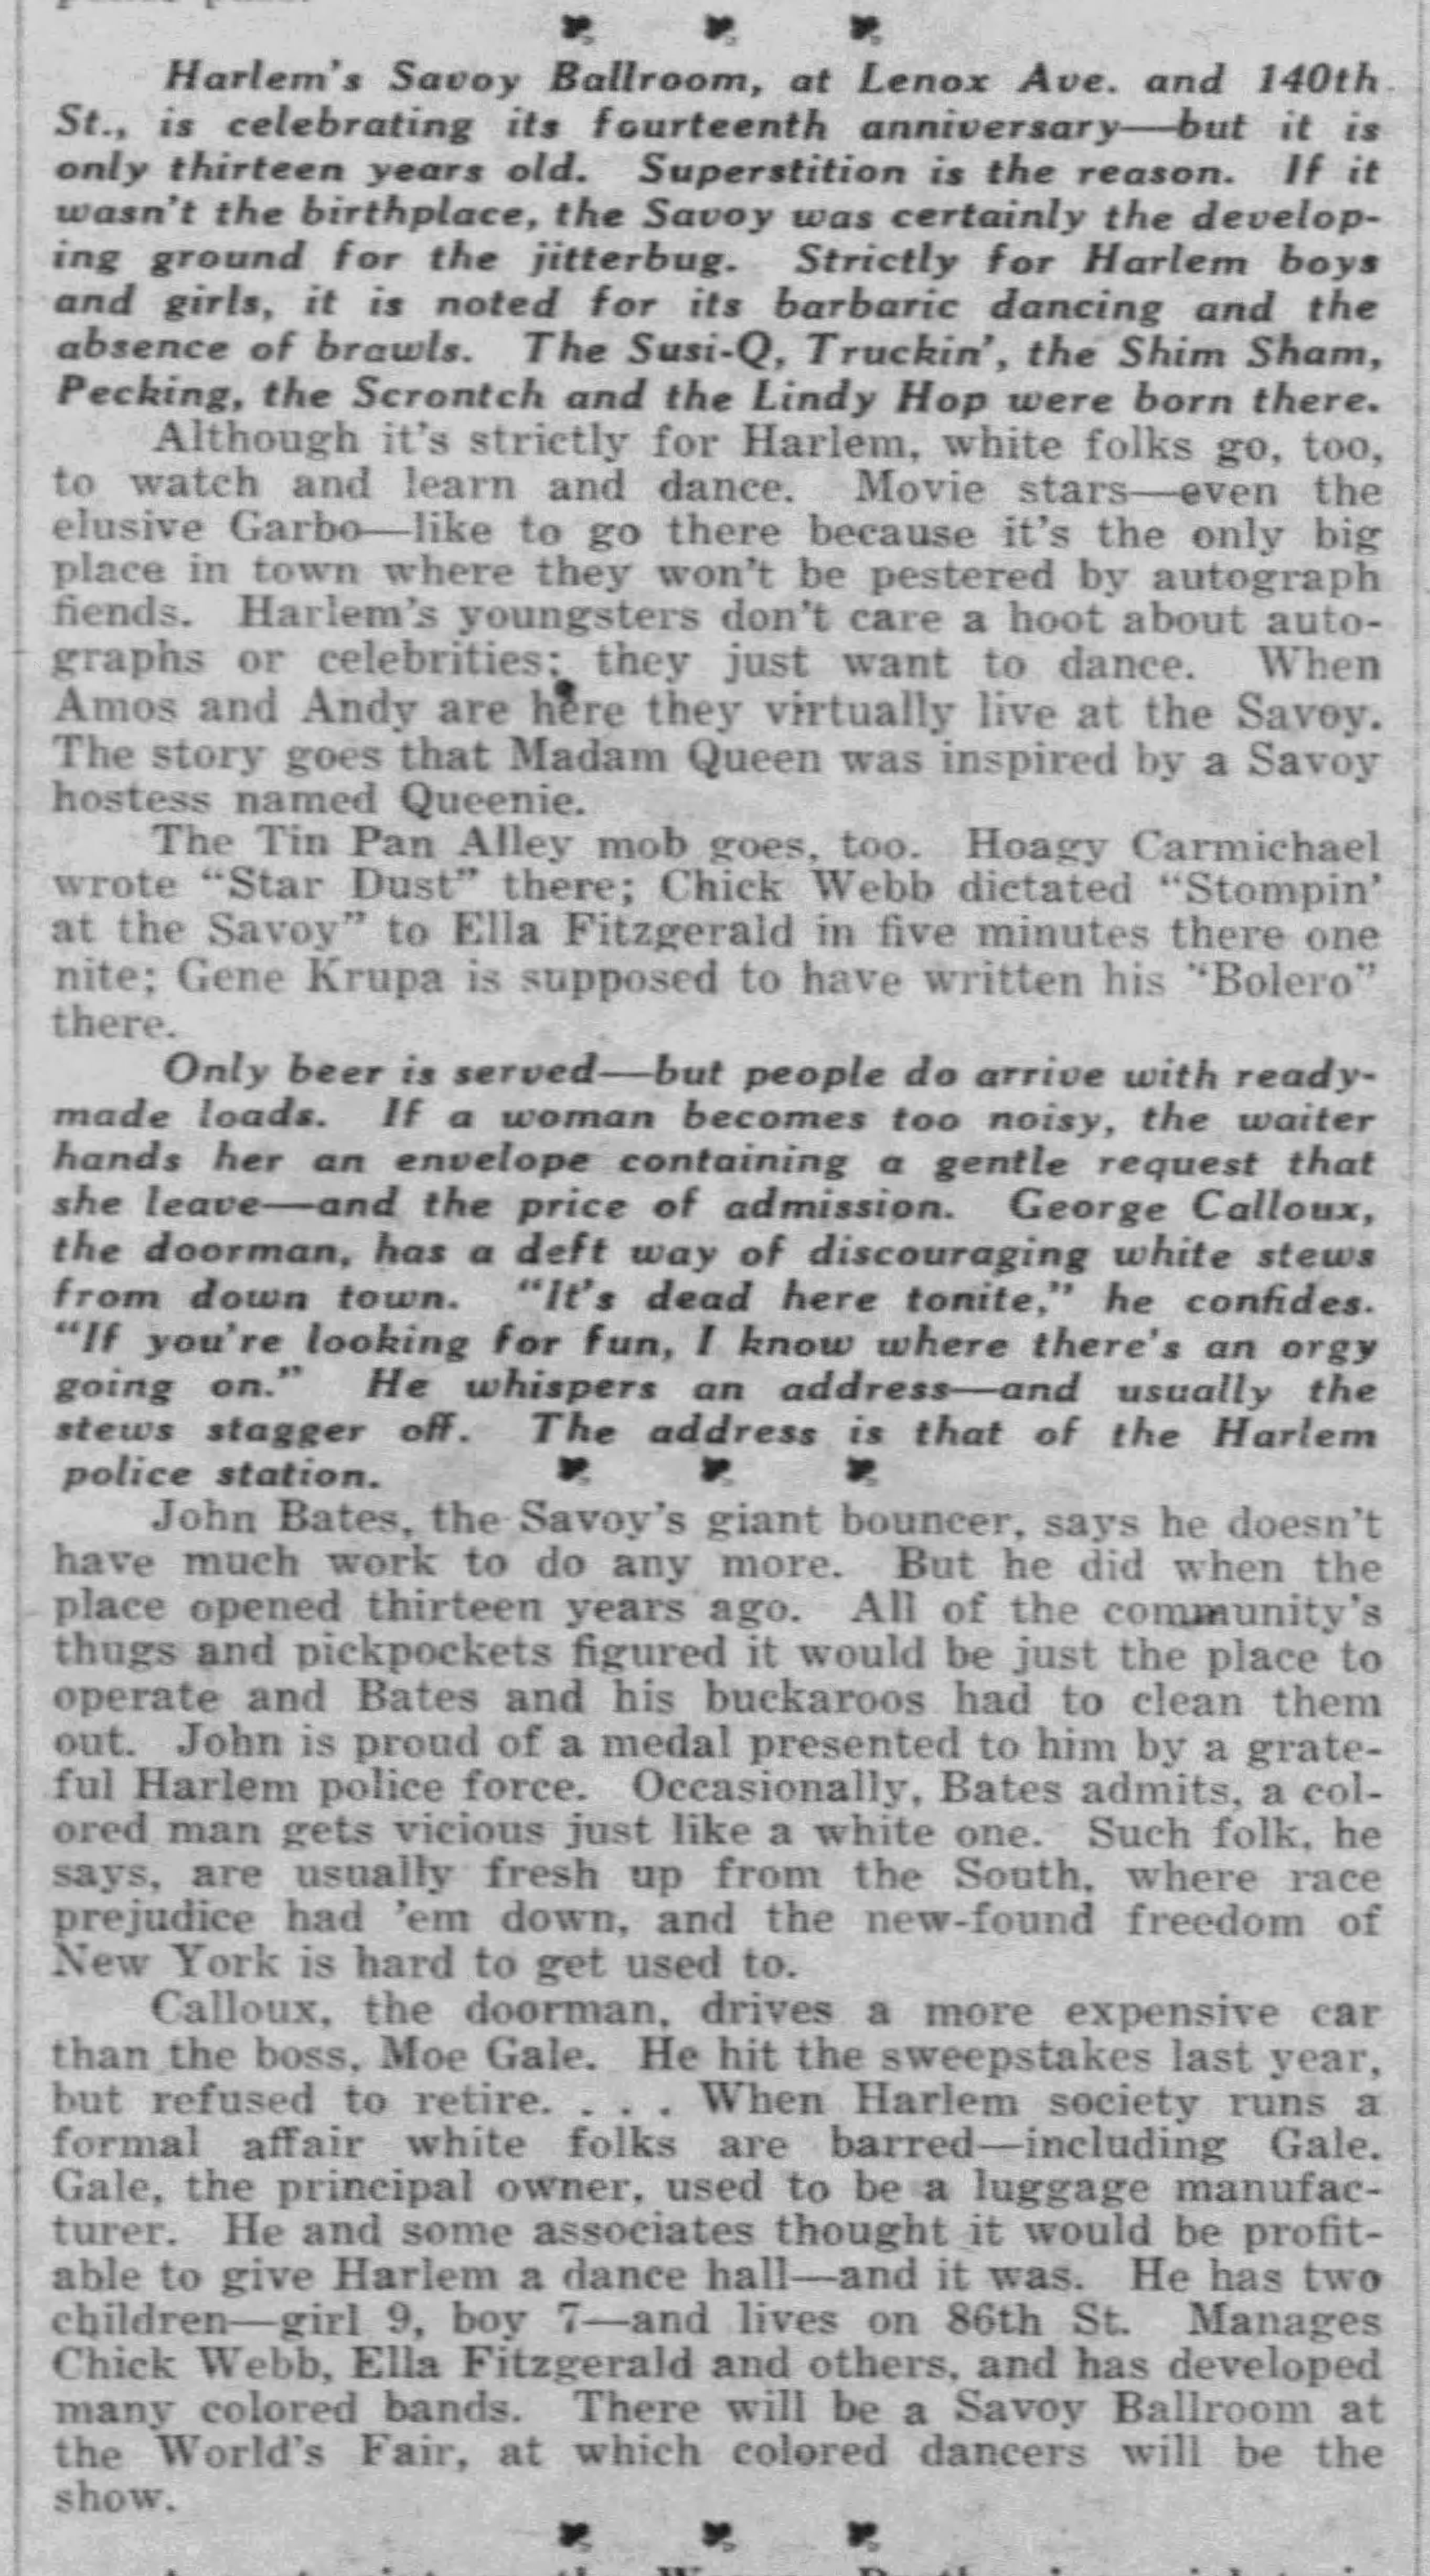 Article on the Savoy Daily_News_Mon__Apr_17__1939_